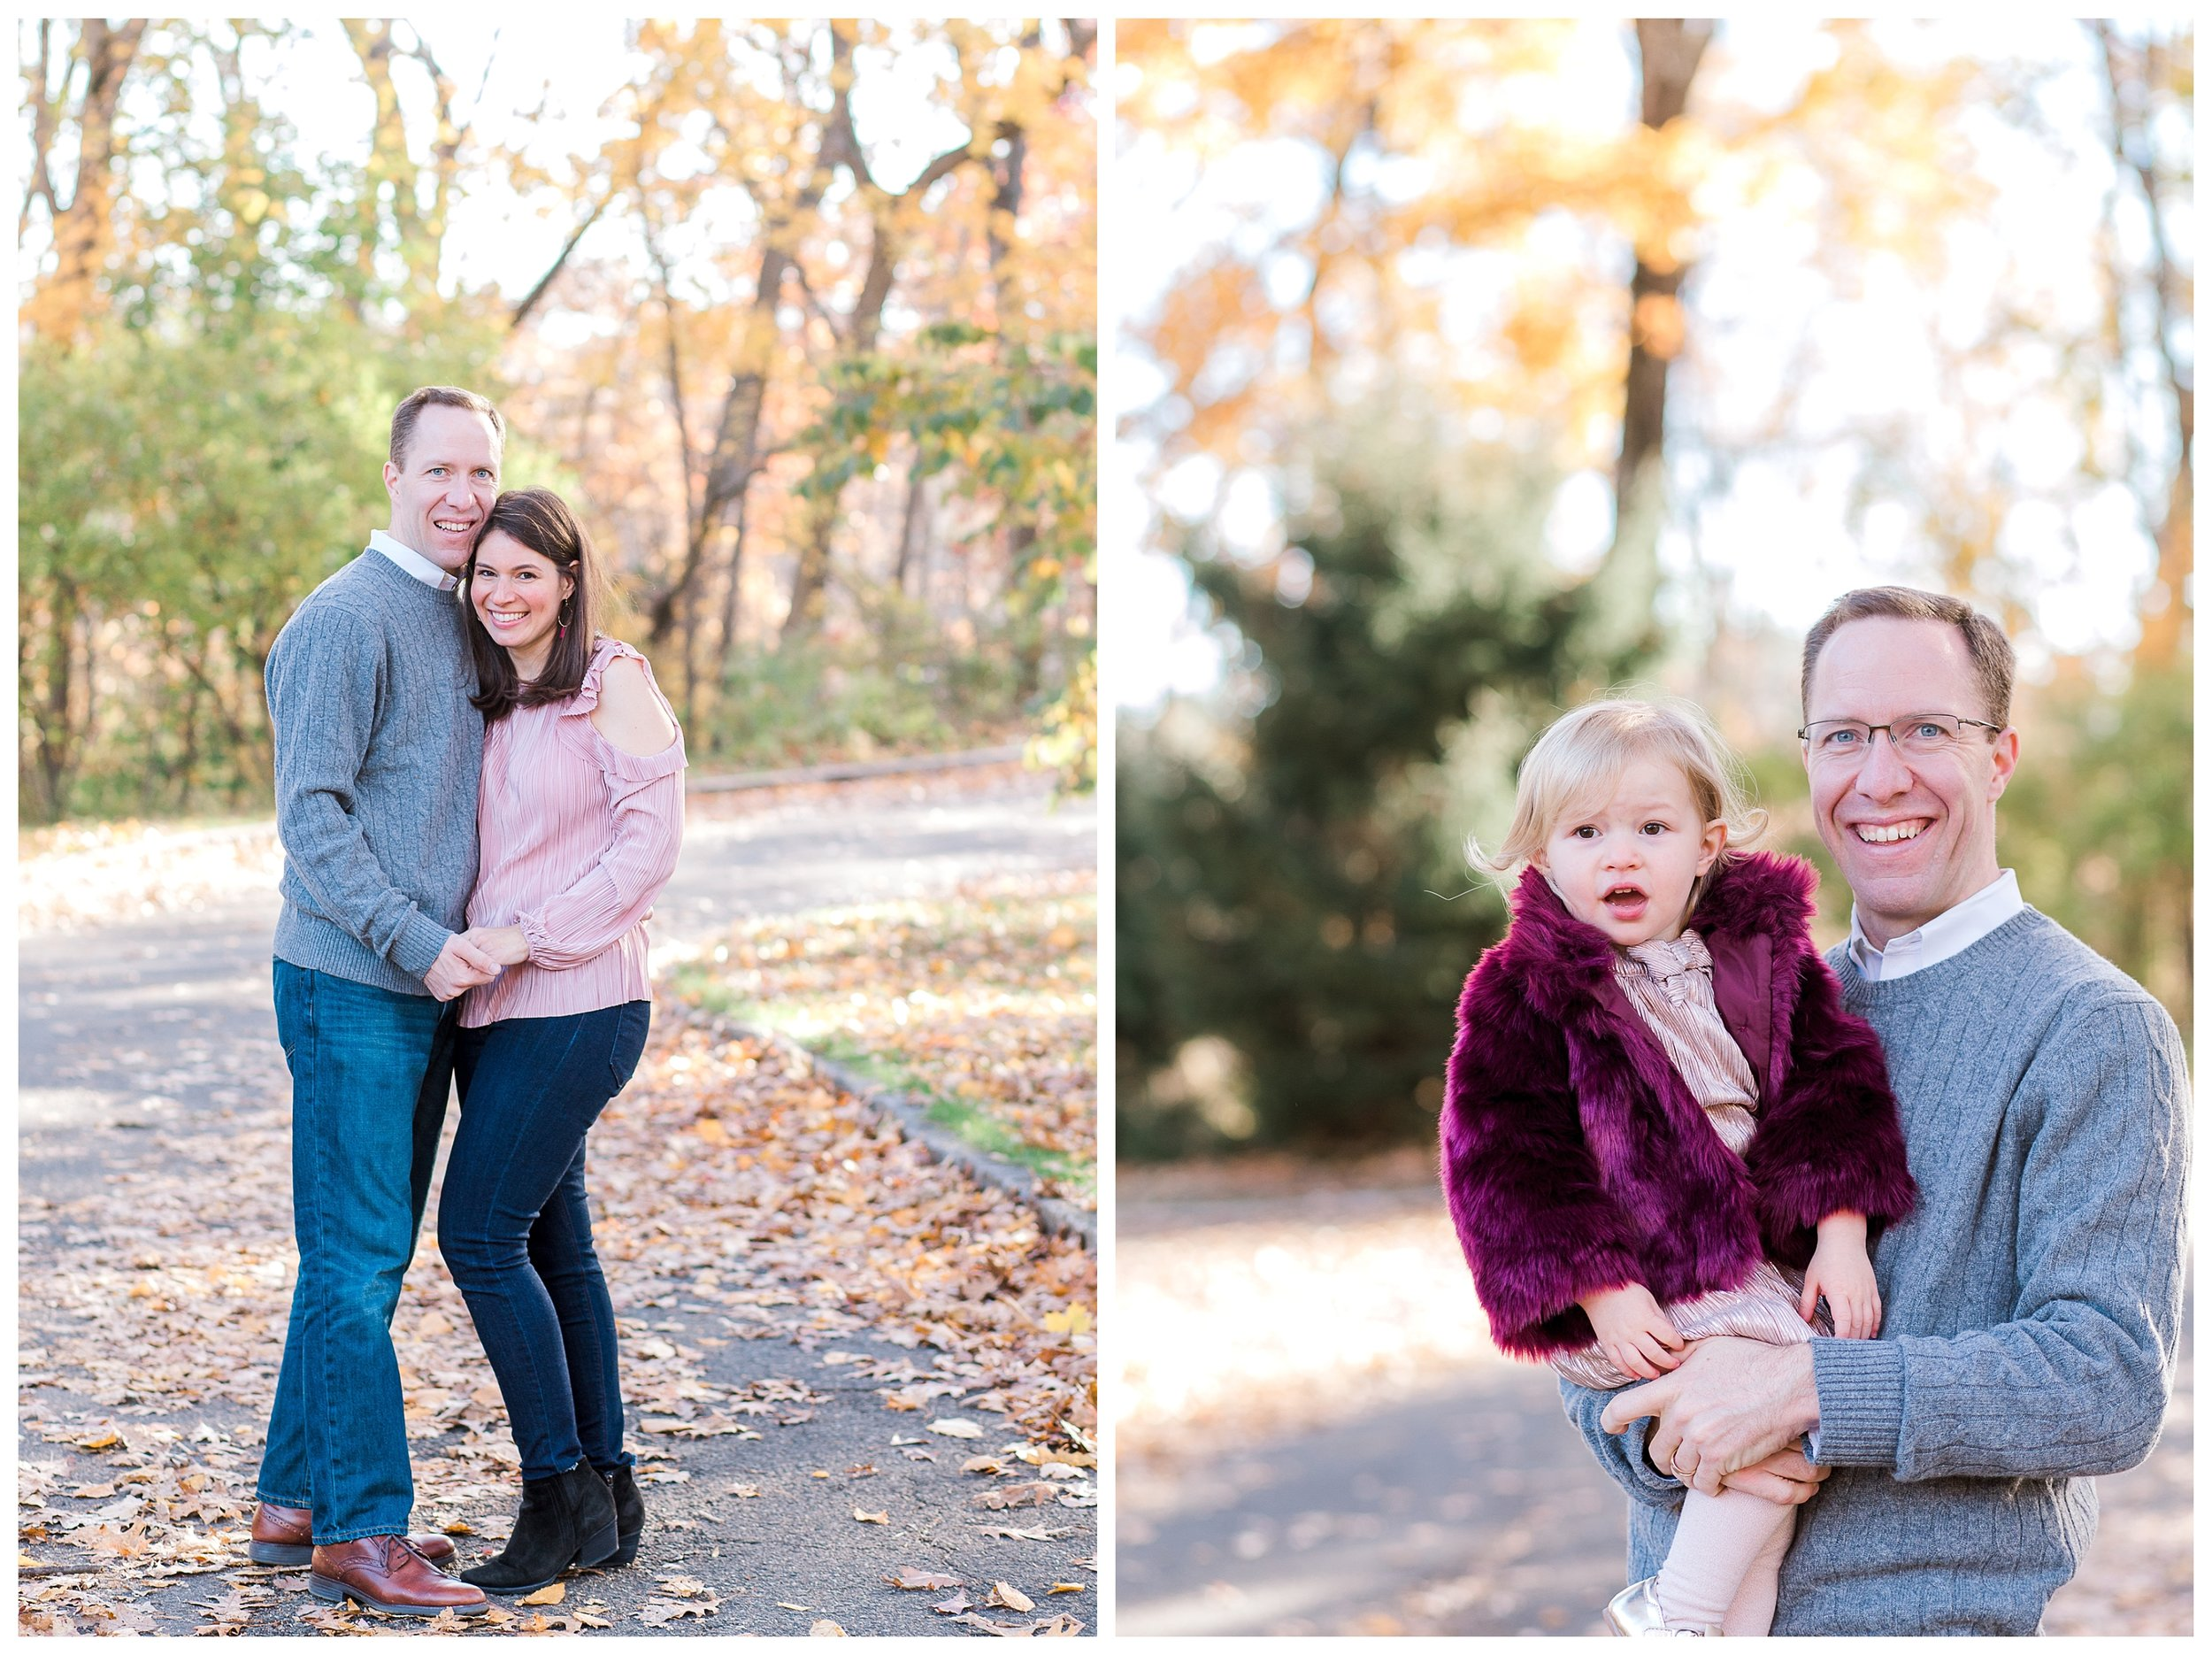 wellesley_fall_family_photographer_erica_pezente_photo (9).jpg